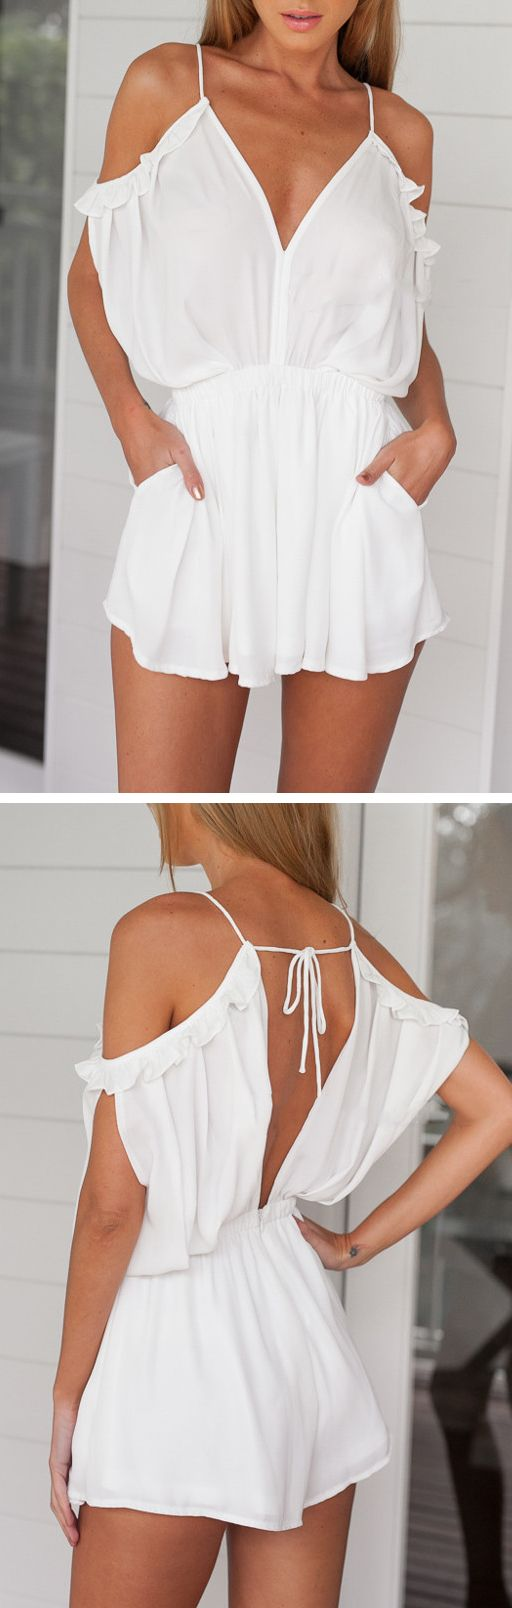 Grecian ruffled playsuit